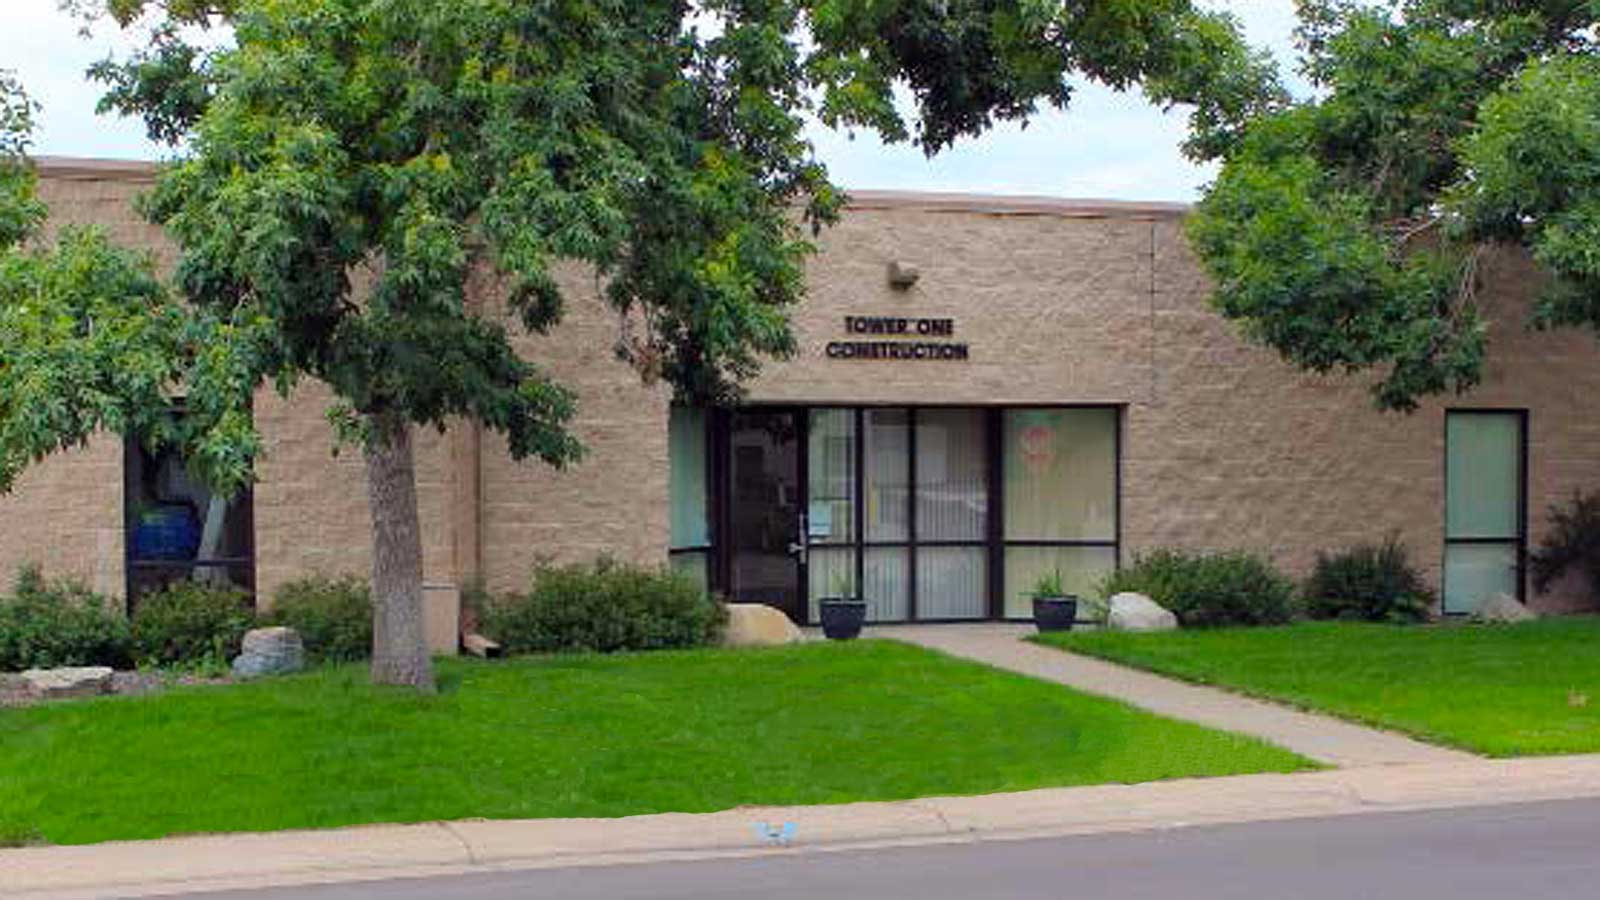 1285 Byers Place, Denver Commercial Real Estate